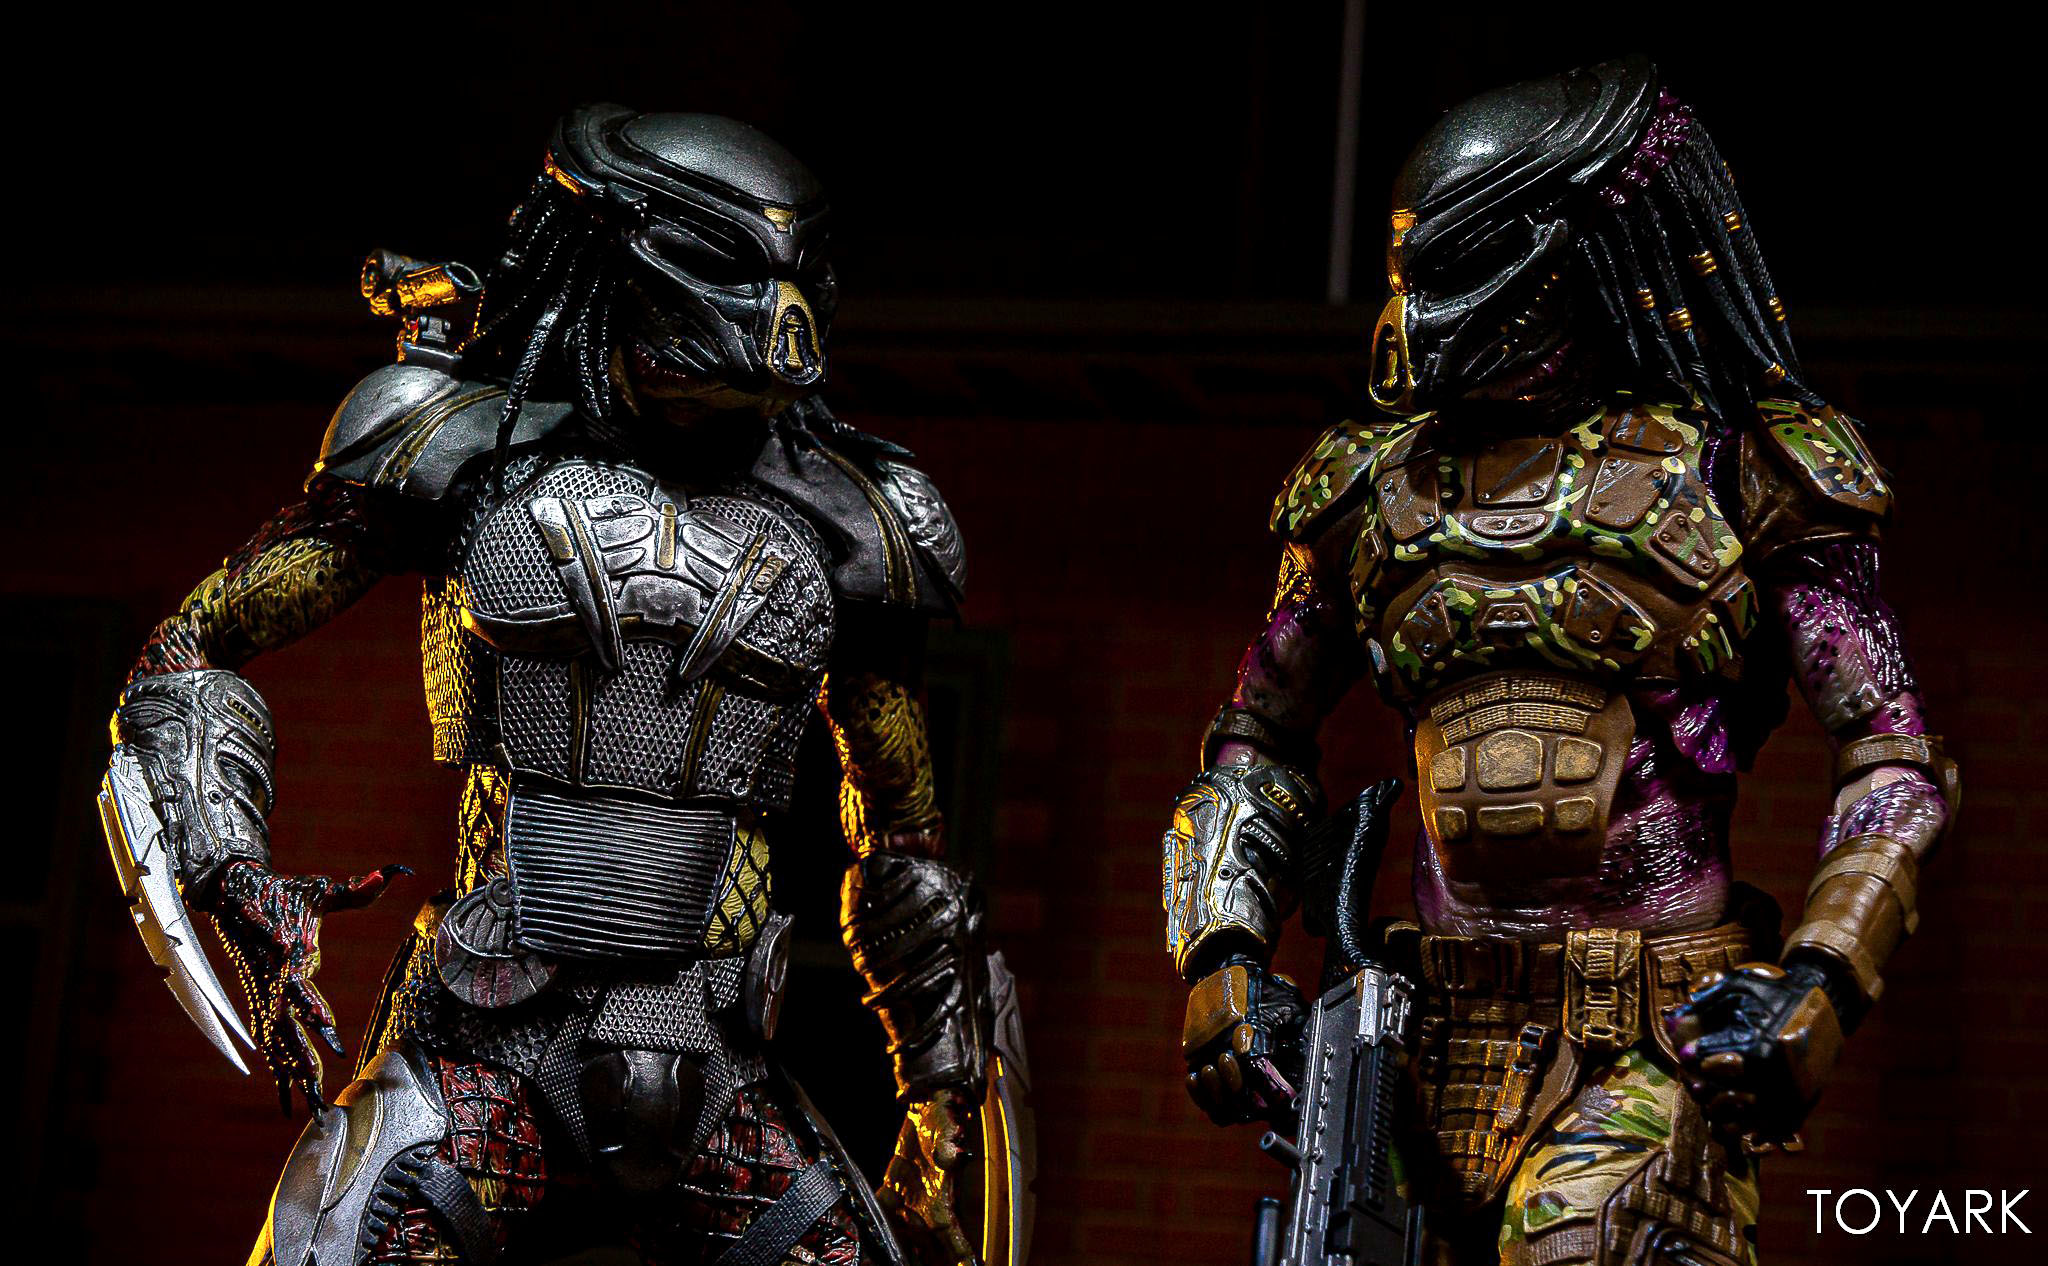 https://news.toyark.com/wp-content/uploads/sites/4/2019/05/Emissary-Predator-1-NECA-Figure-028.jpg